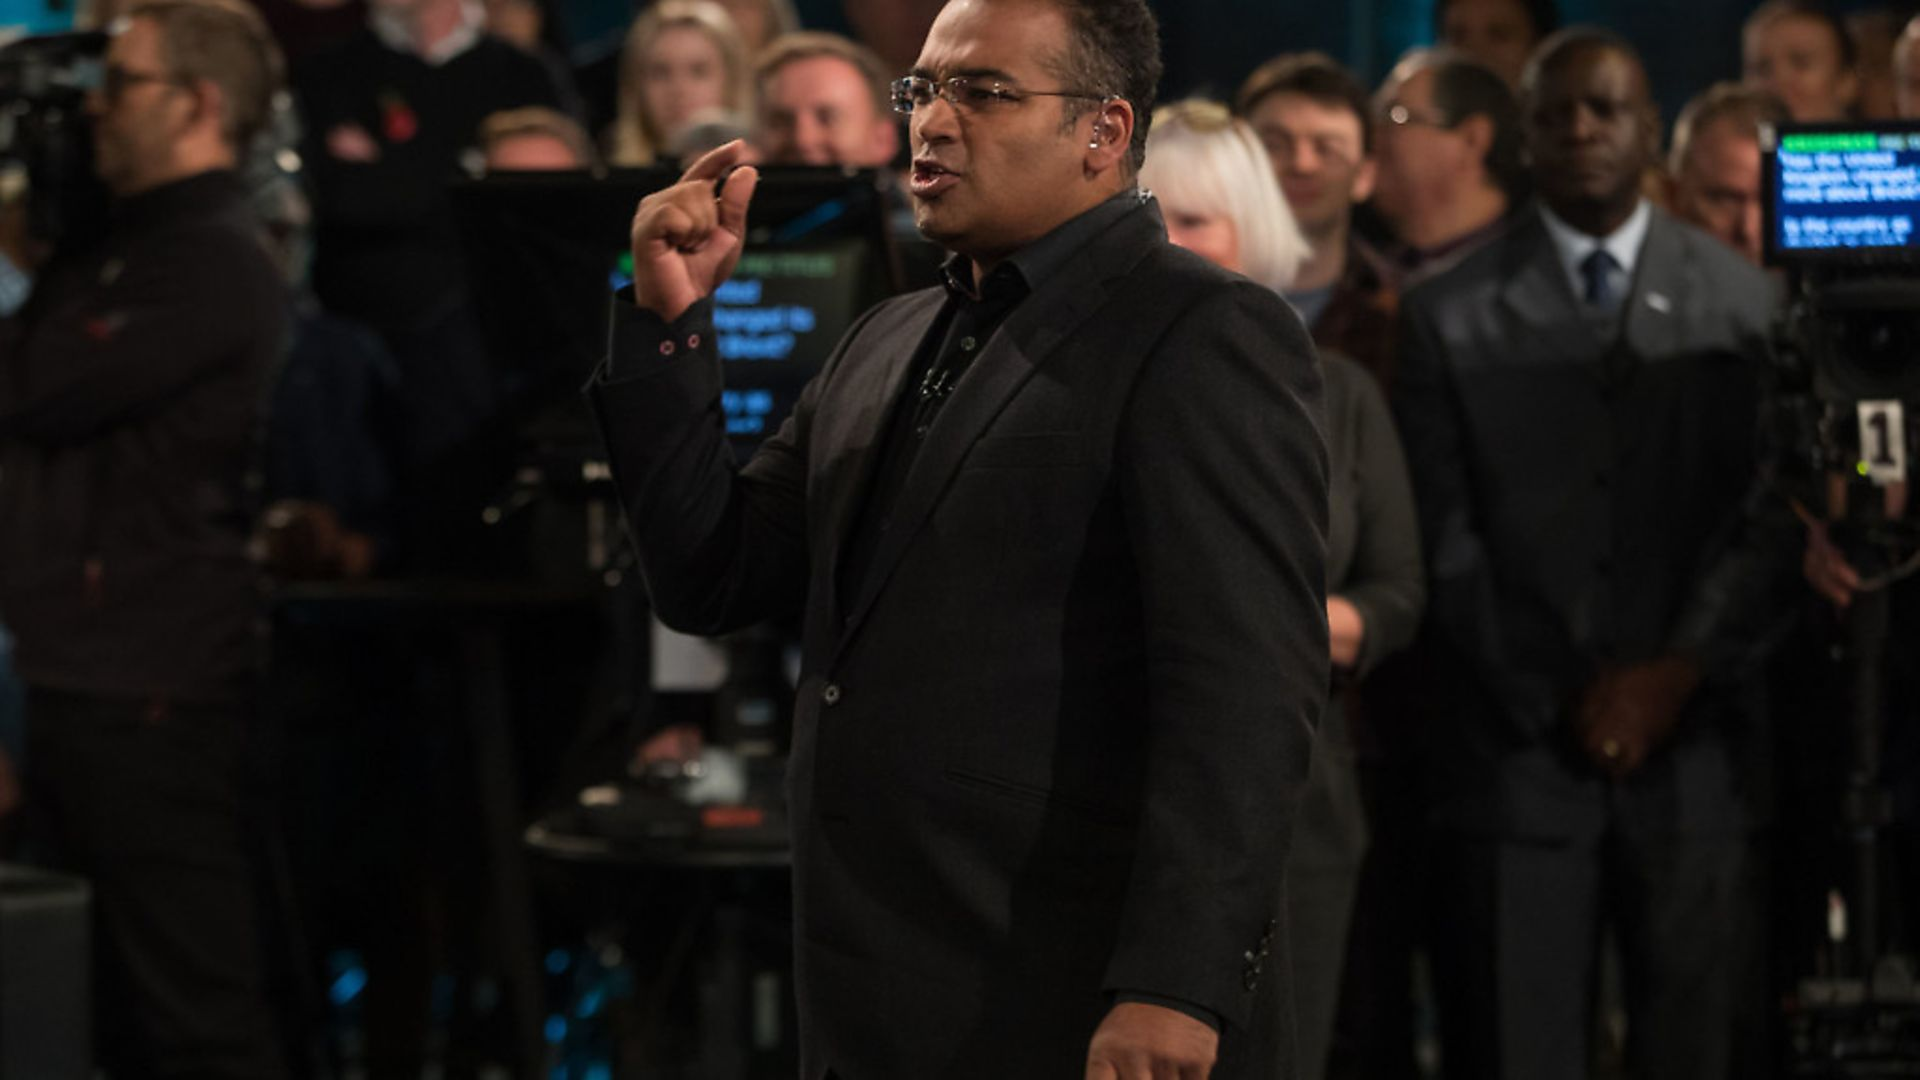 Host Krishnan Guru-Murthy at a previous Channel 4 Brexit debate. Photograph: Aaron Chown. - Credit: PA Wire/PA Images